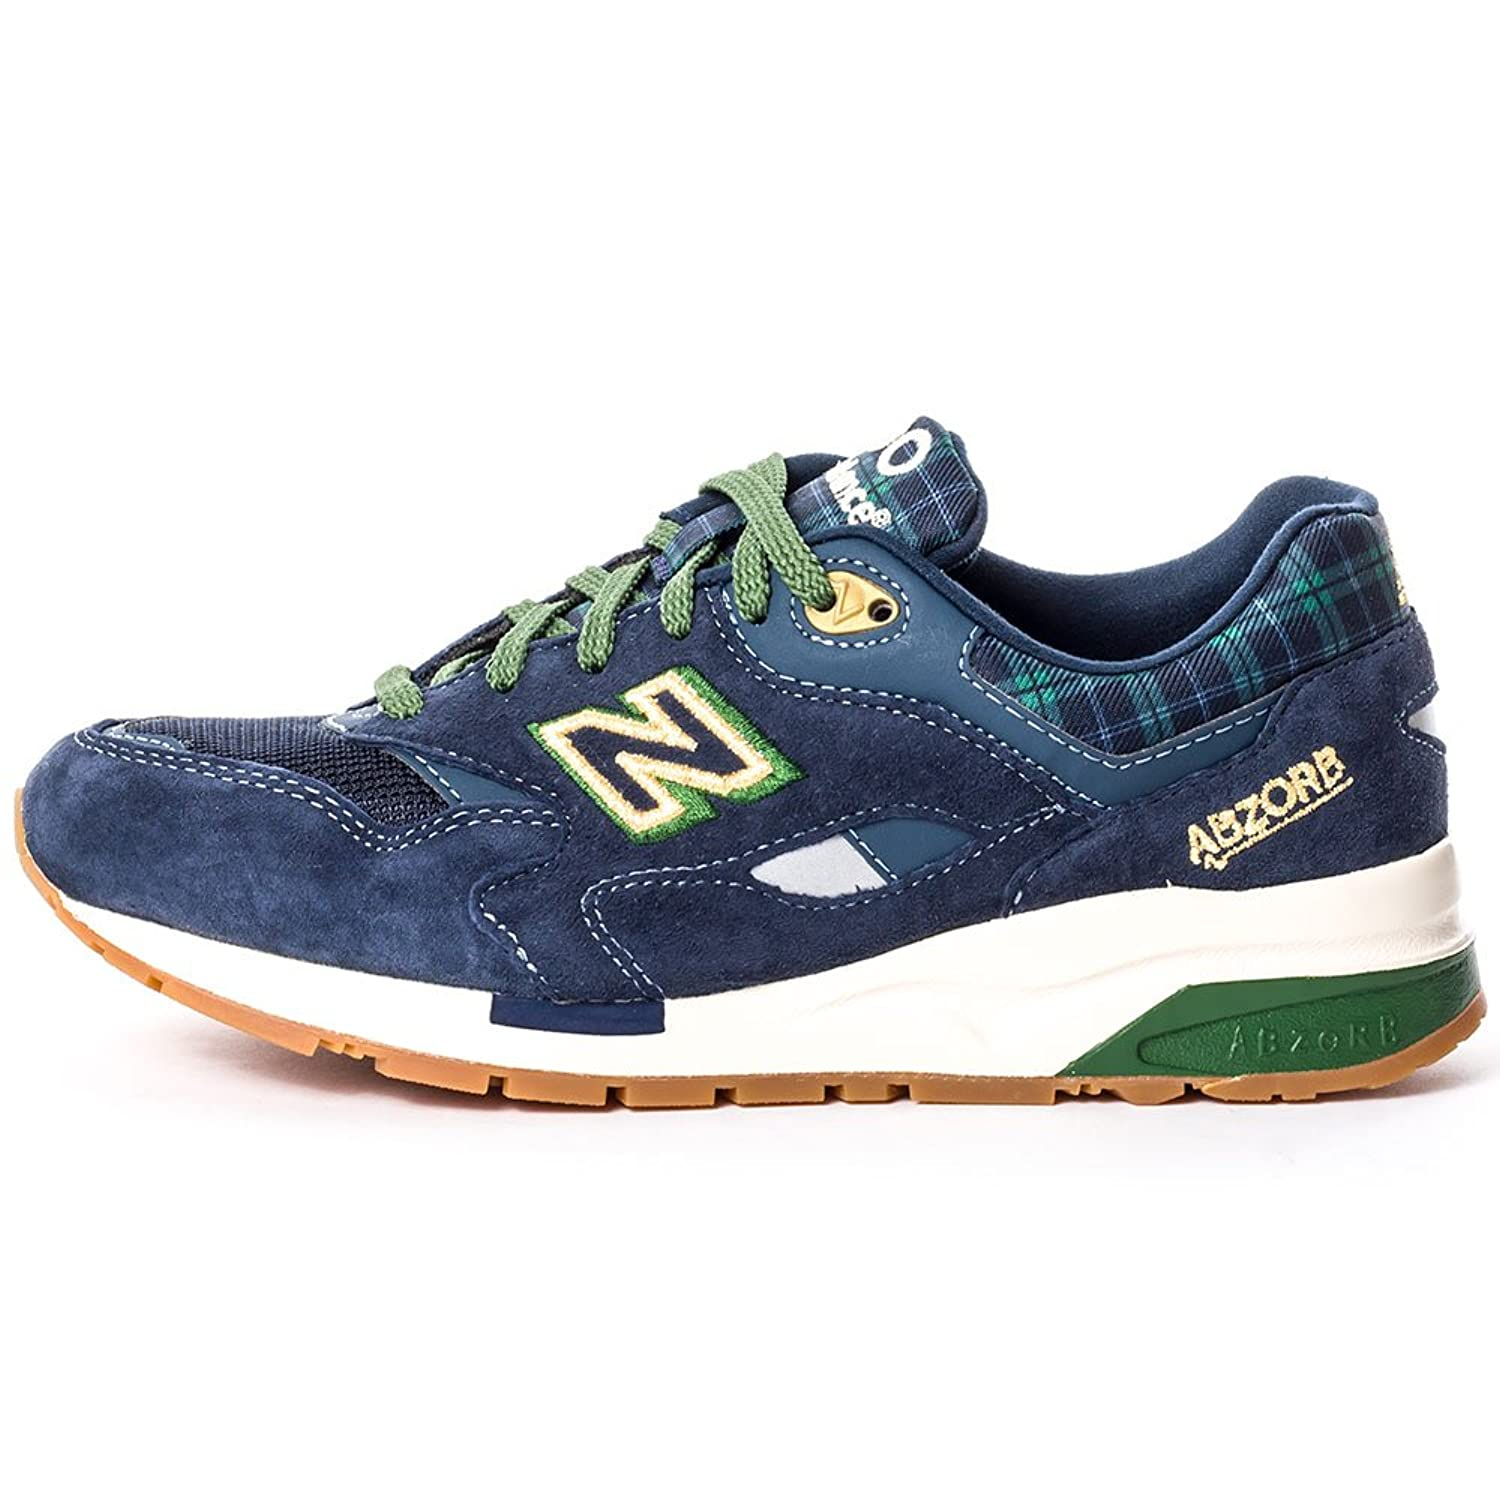 New Balance Cw1600 B Wn Navy 449790 50-36,5